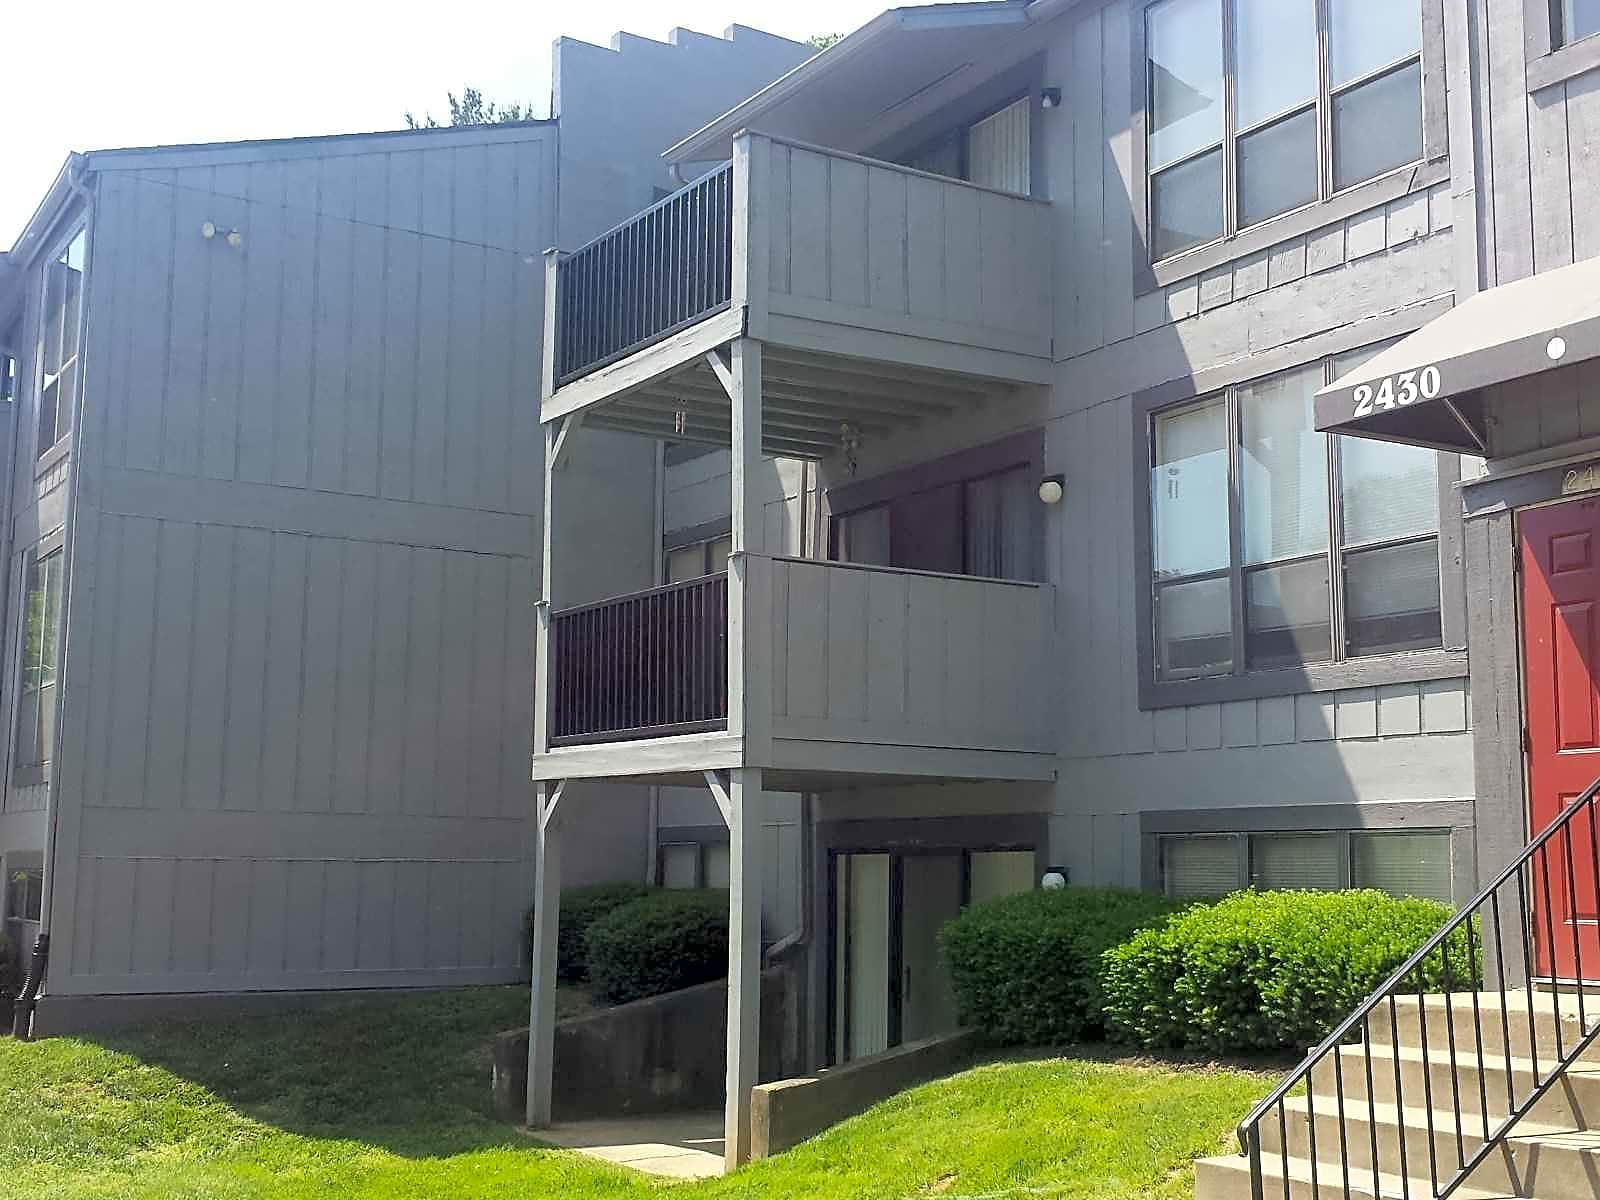 Apartments Near Bellarmine Eagles Eyrie Apartments for Bellarmine University Students in Louisville, KY